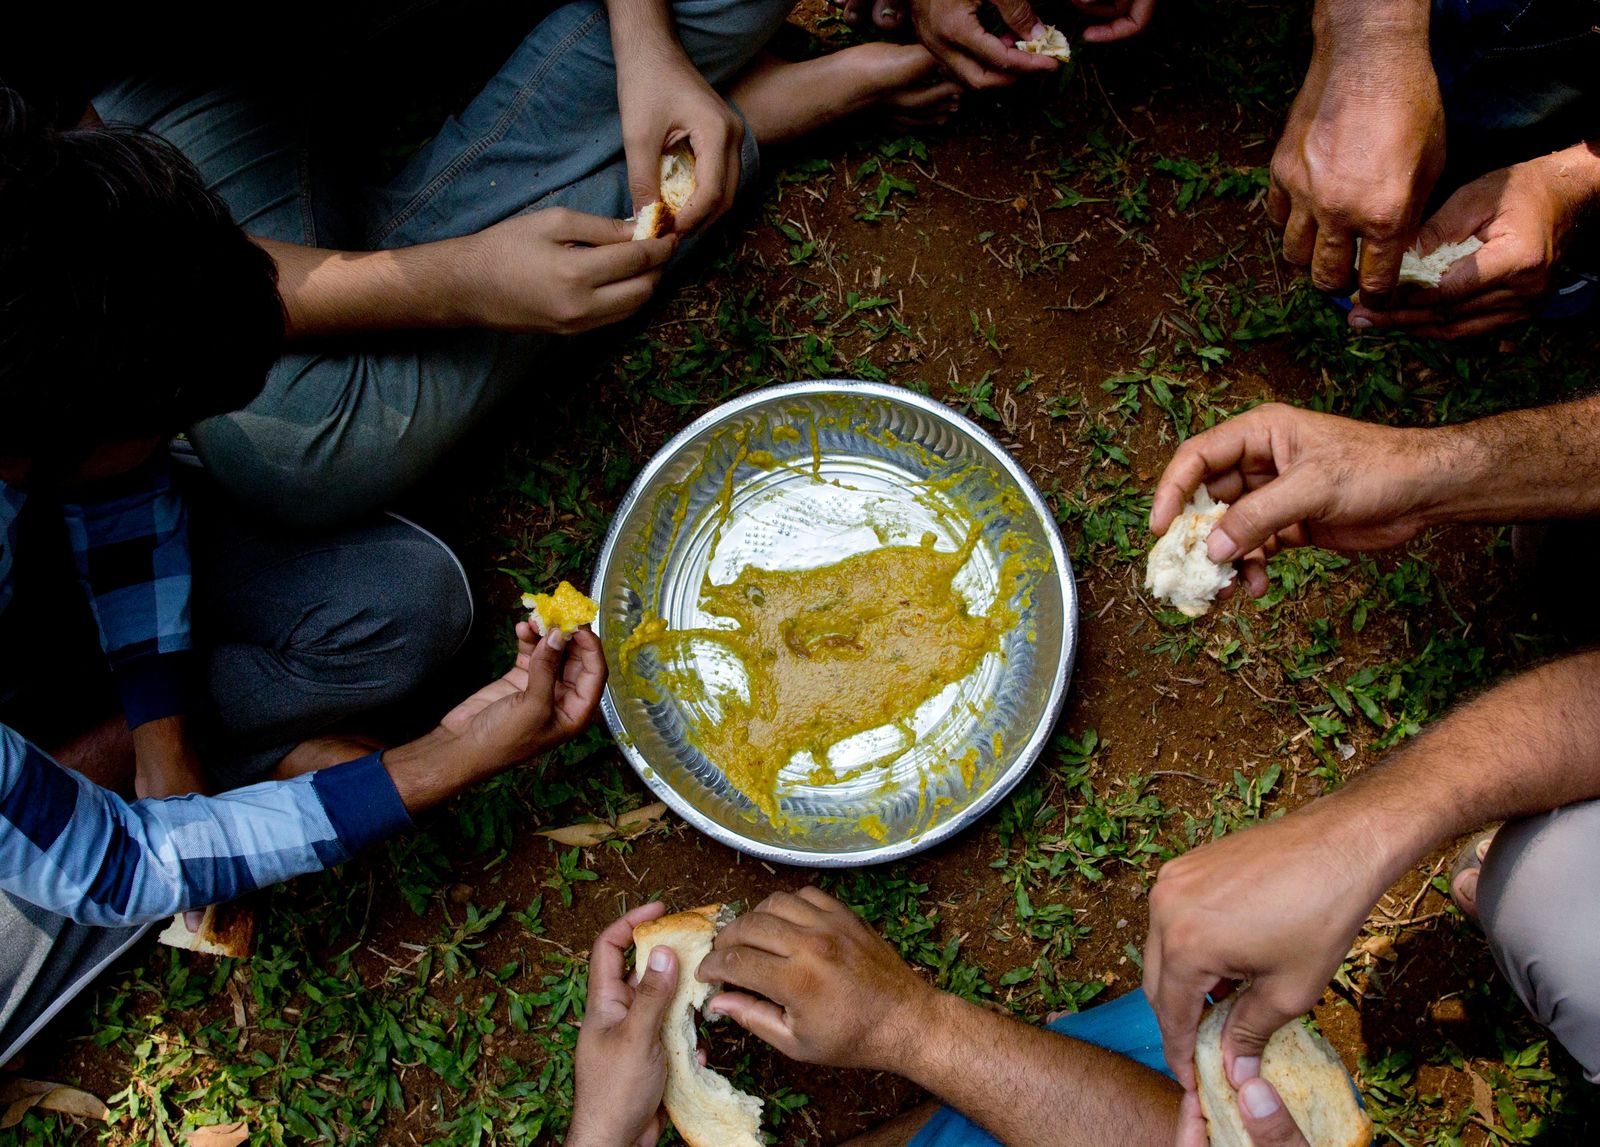 Ahmadi Muslim refugees eat a meal at a community center that they took refuge in Pasyala, north east of Colombo, Sri Lanka, Thursday, April 25, 2019.{ } (AP Photo/Gemunu Amarasinghe)